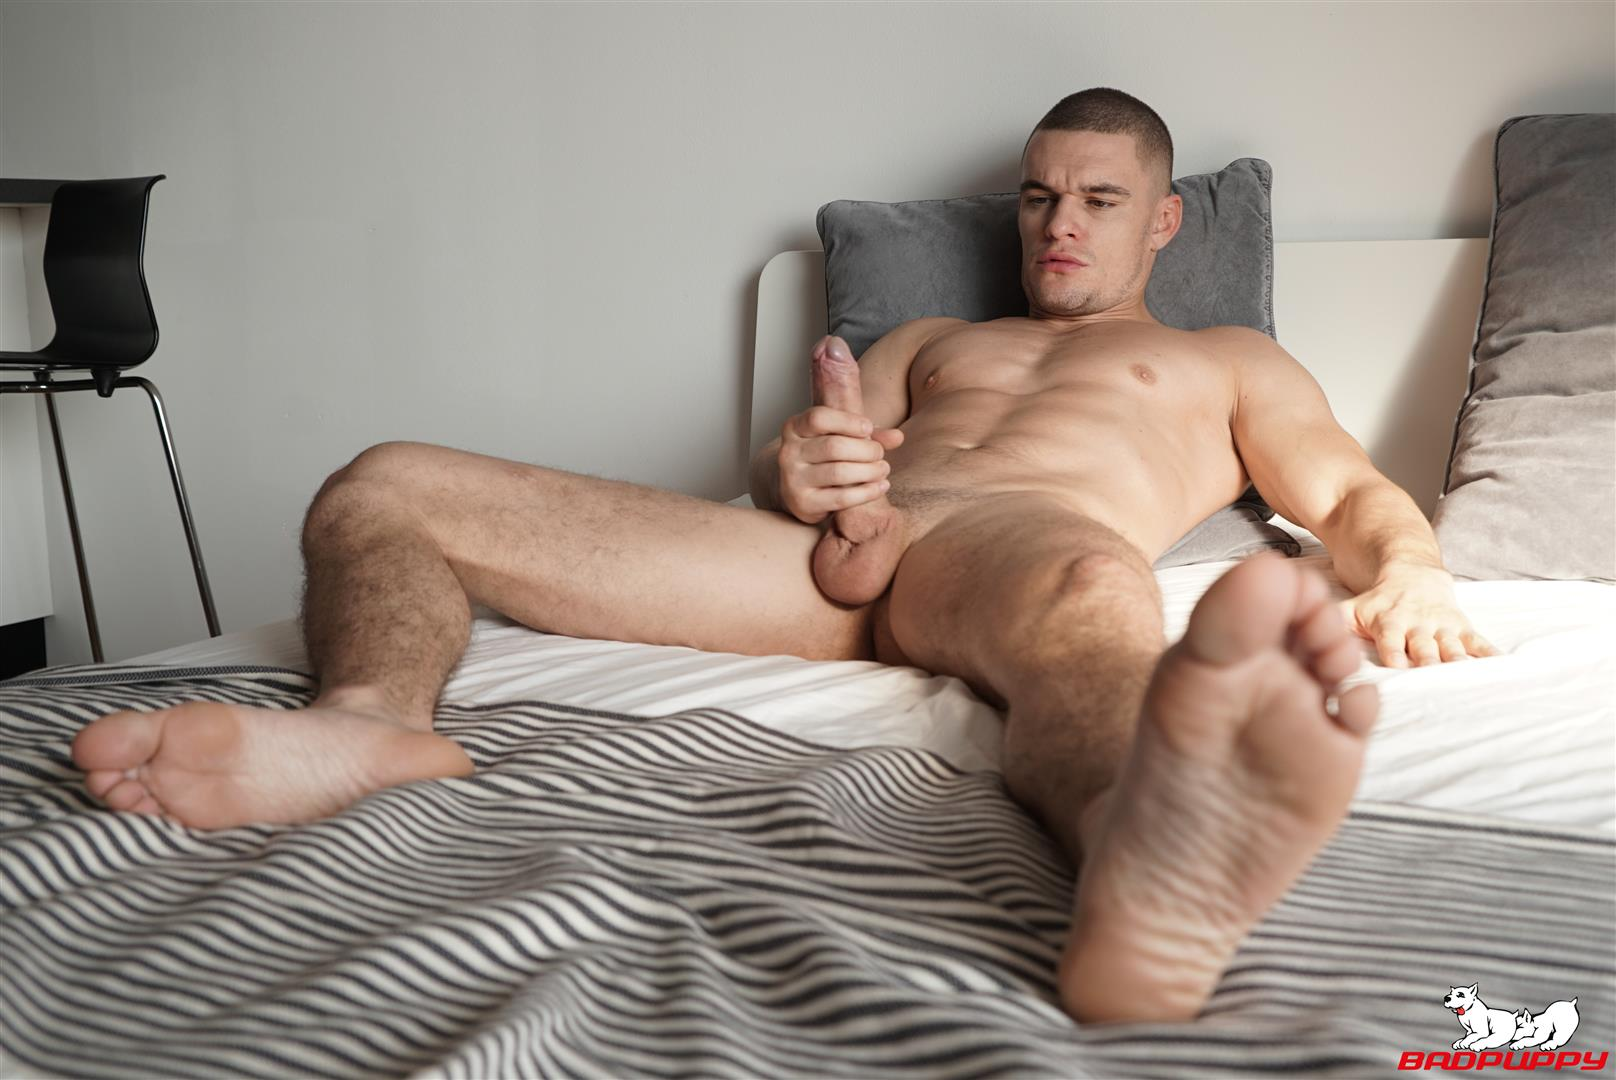 Badpuppy-Max-Dior-Big-Uncut-Cock-Jerkoff-Video-11 Waking Up From A Nap And Jerking Off My Big Uncut Cock